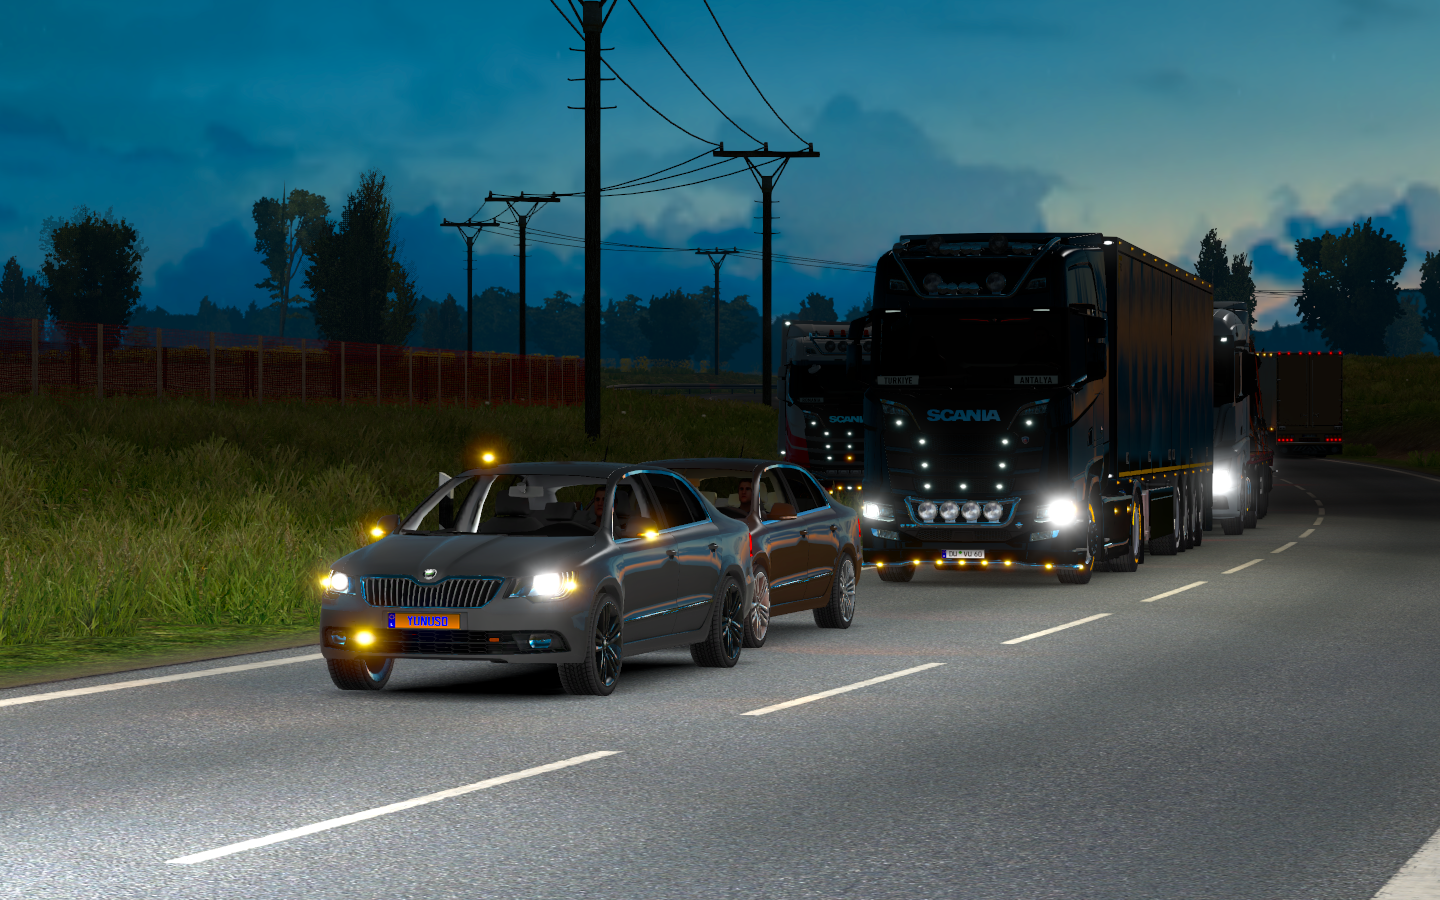 ets2_20190430_225117_00.png